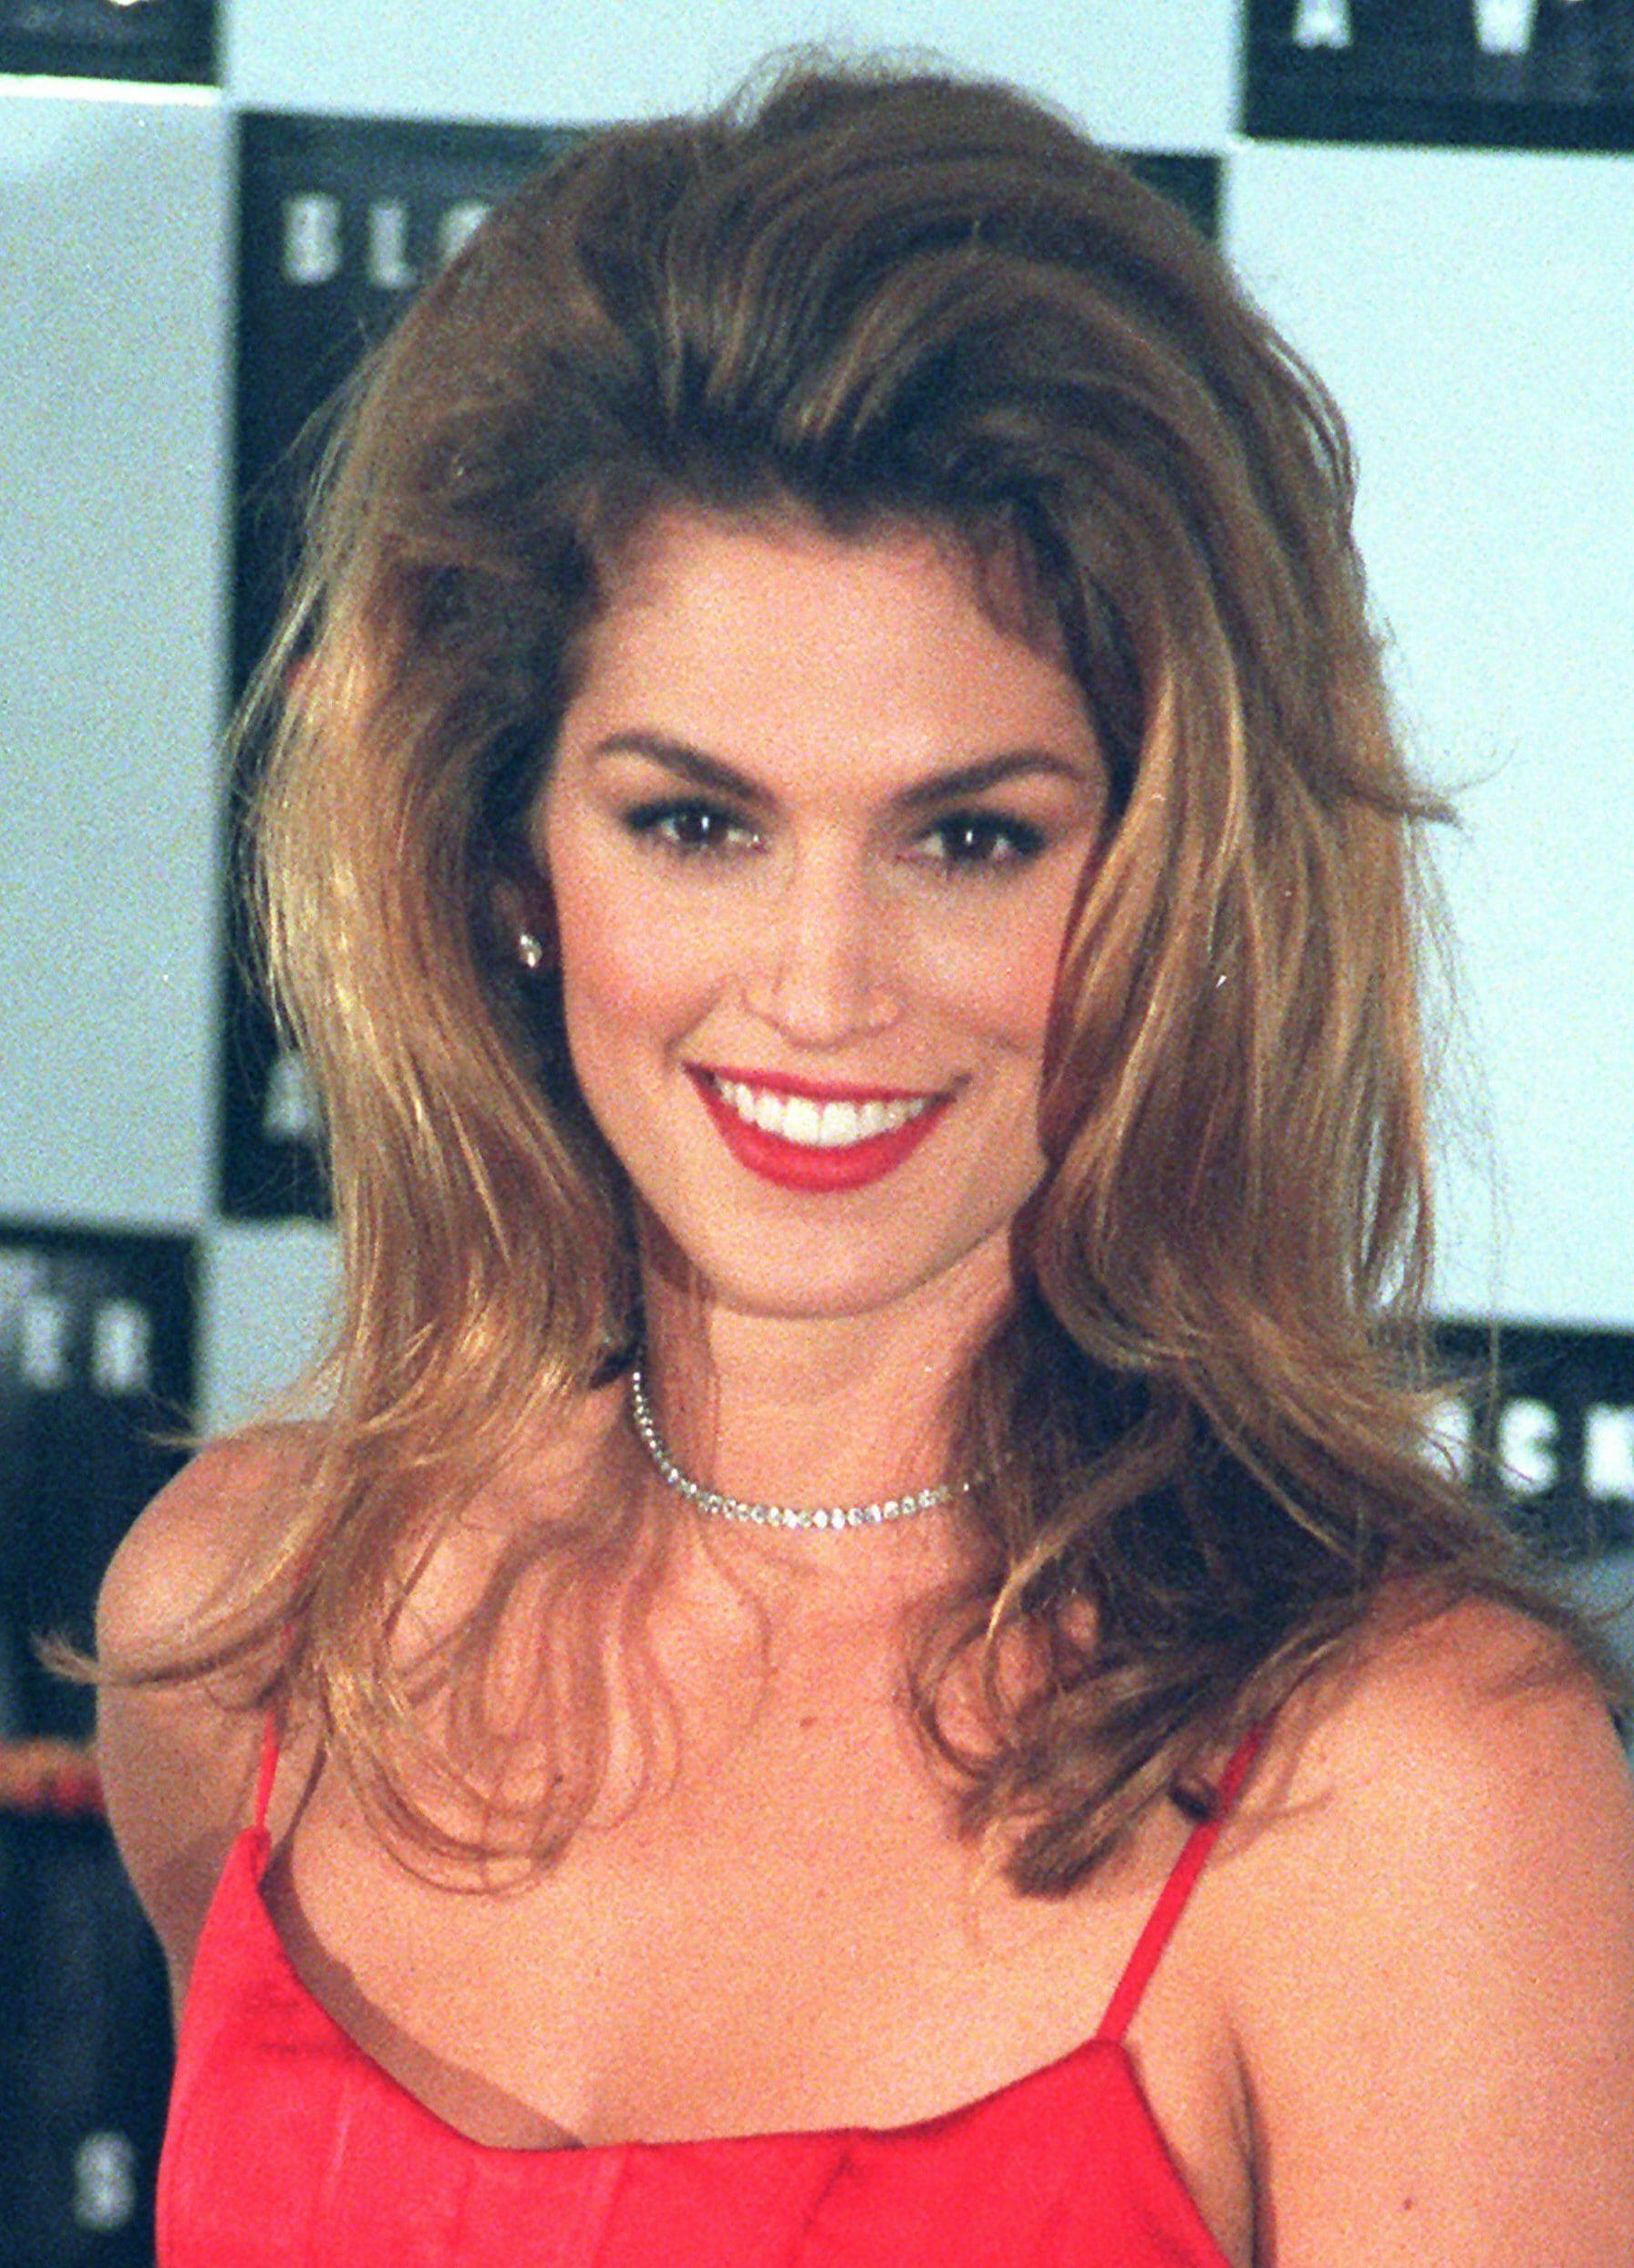 90s Mom Hair : Iconic, Hairstyles, Still, Popular, Today, Things